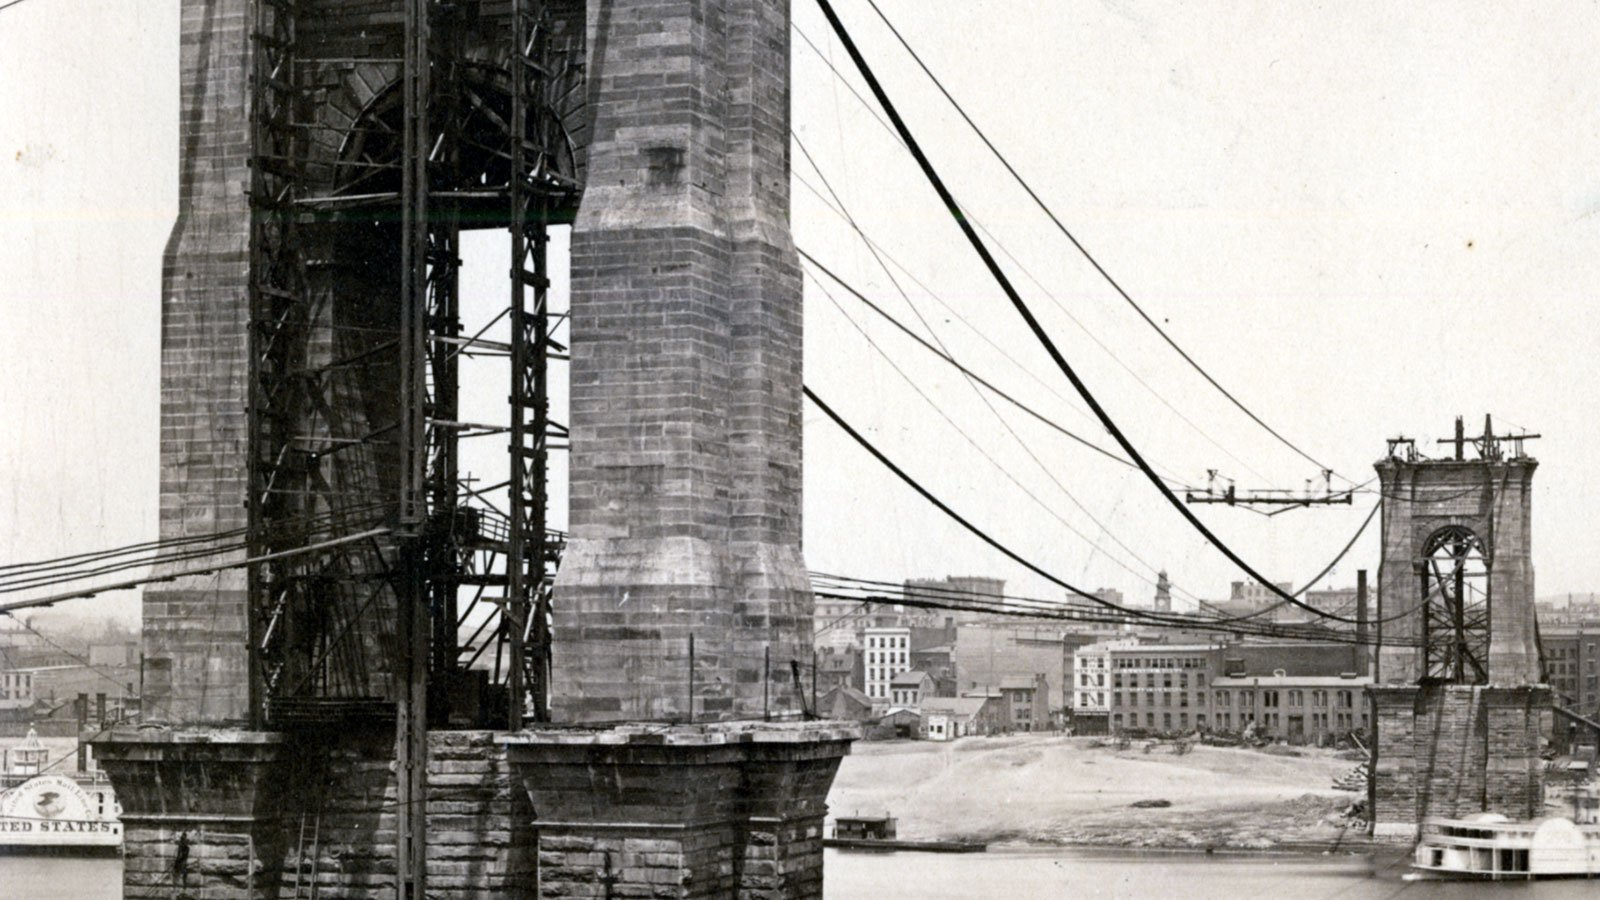 1866: View of cable making between the towers of the Covington and Cincinnati Bridge